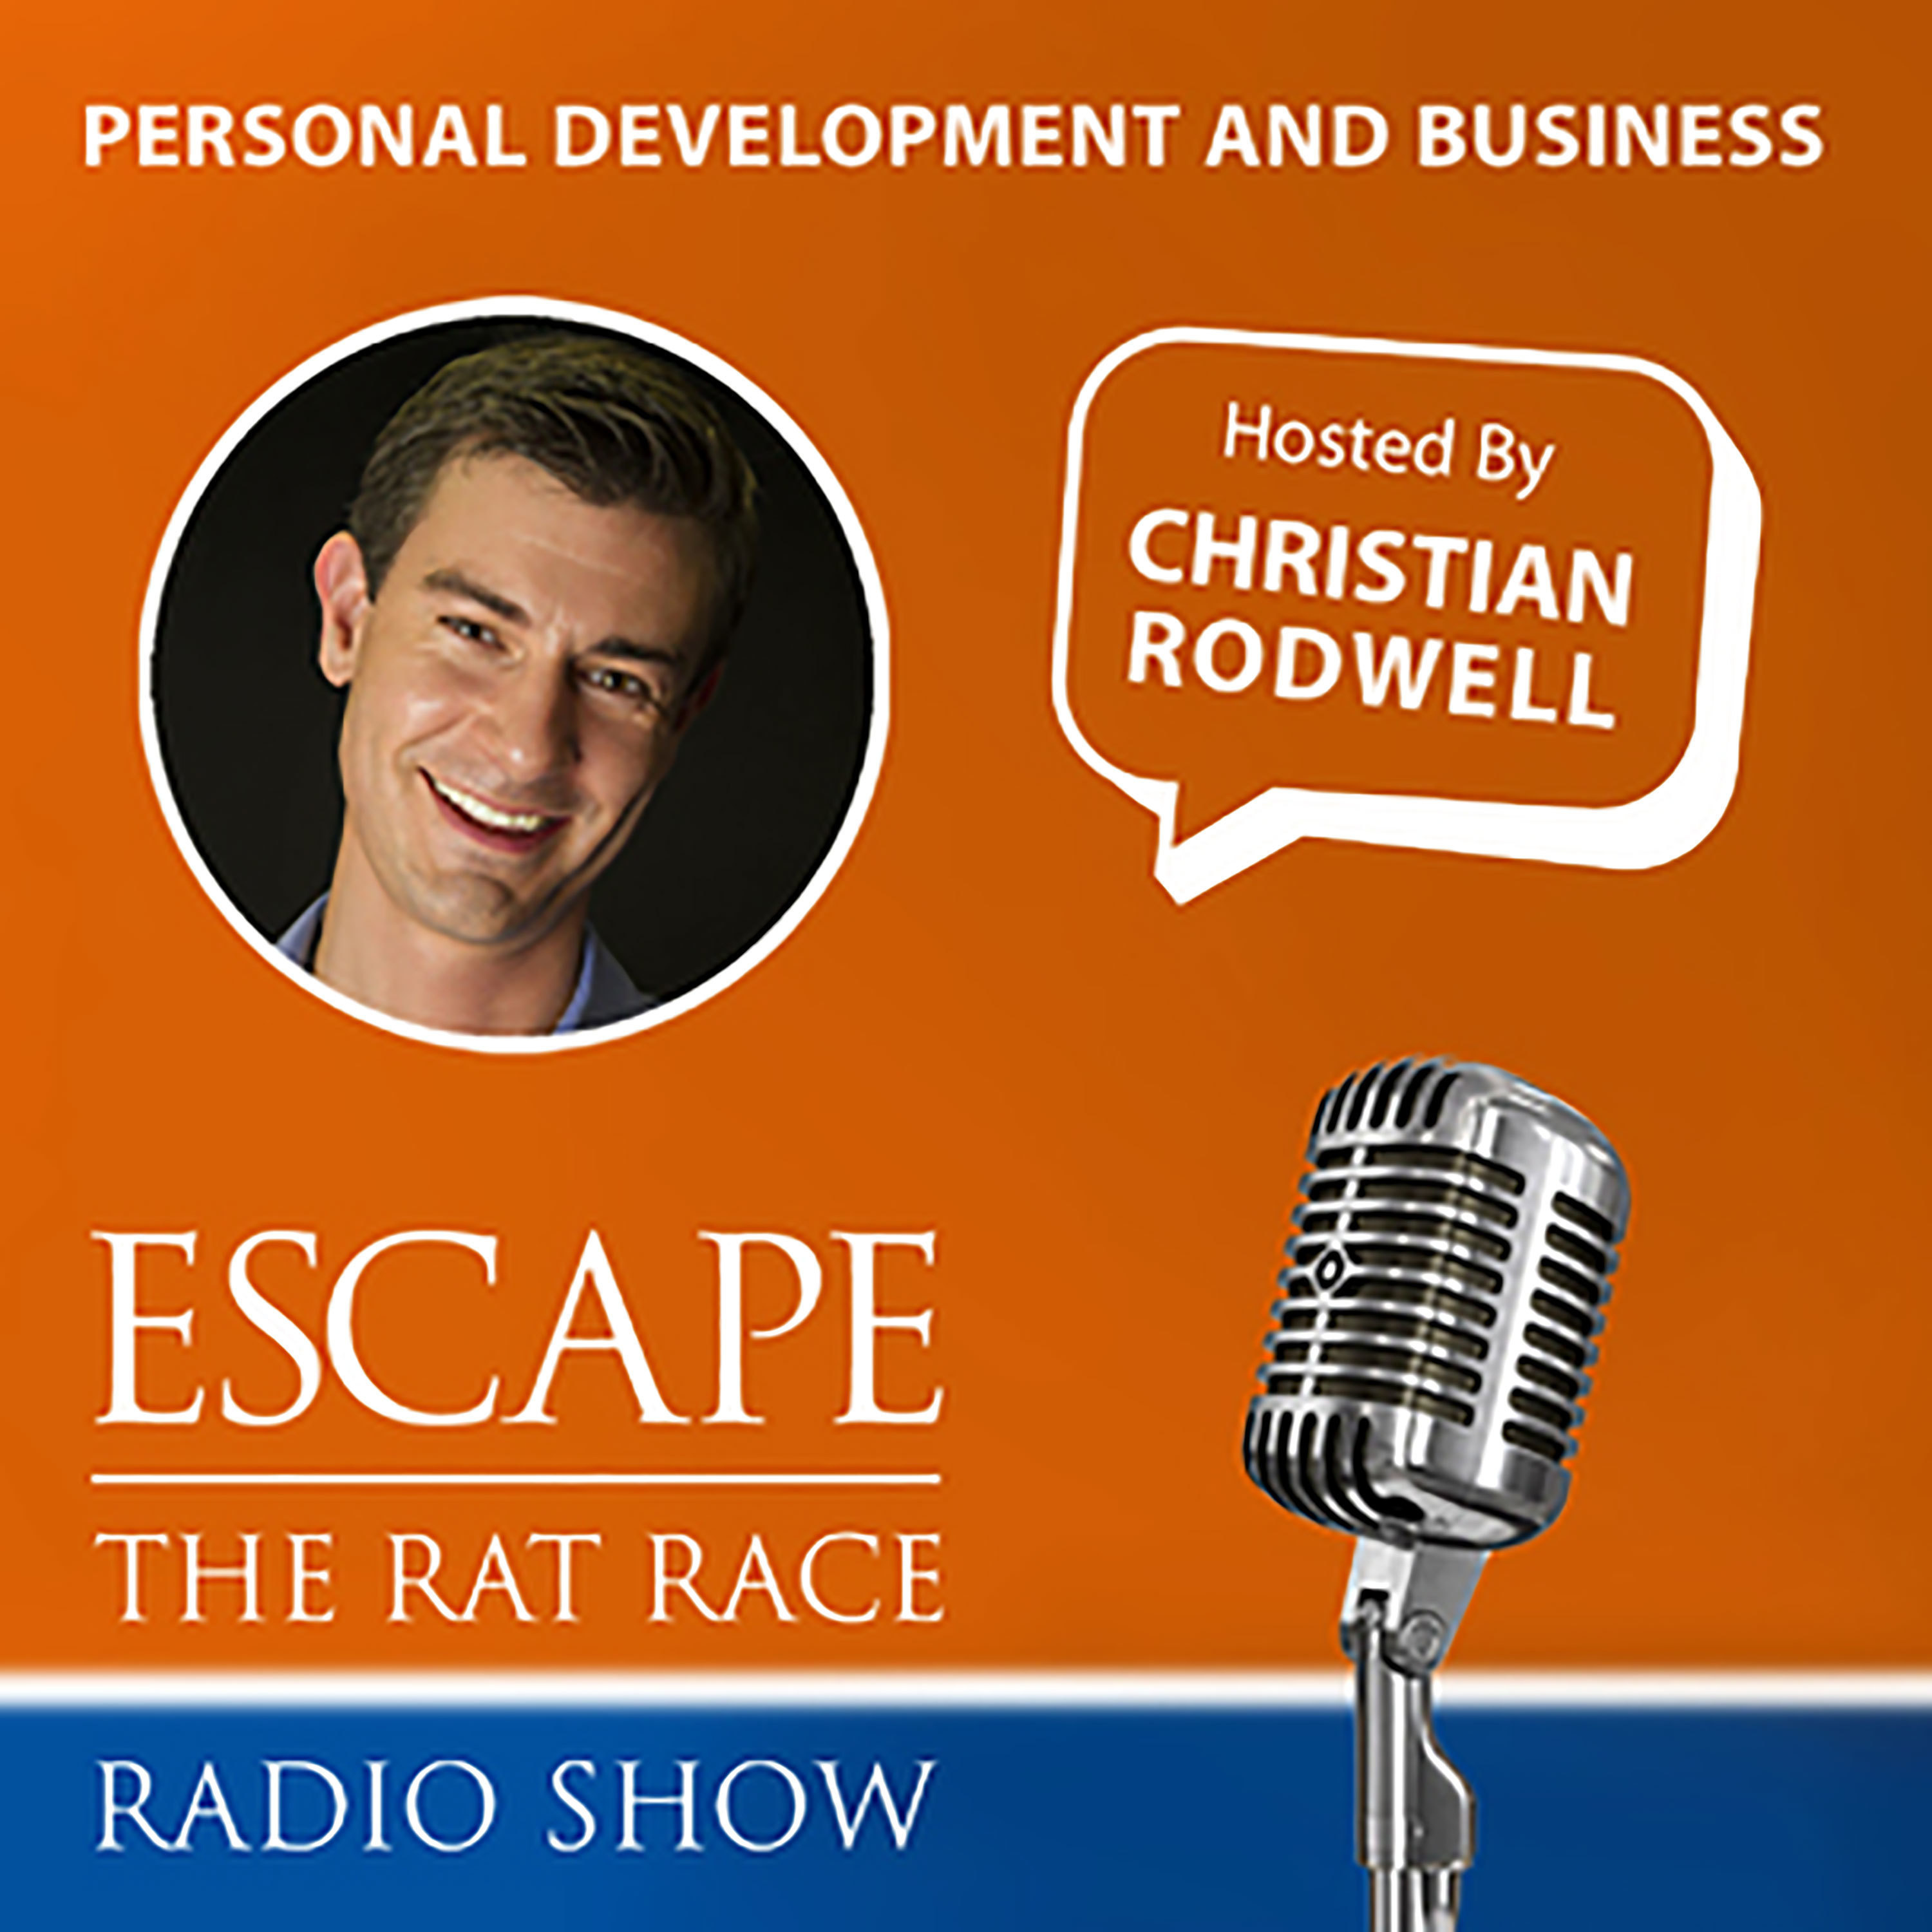 Escape The Rat Race Radio